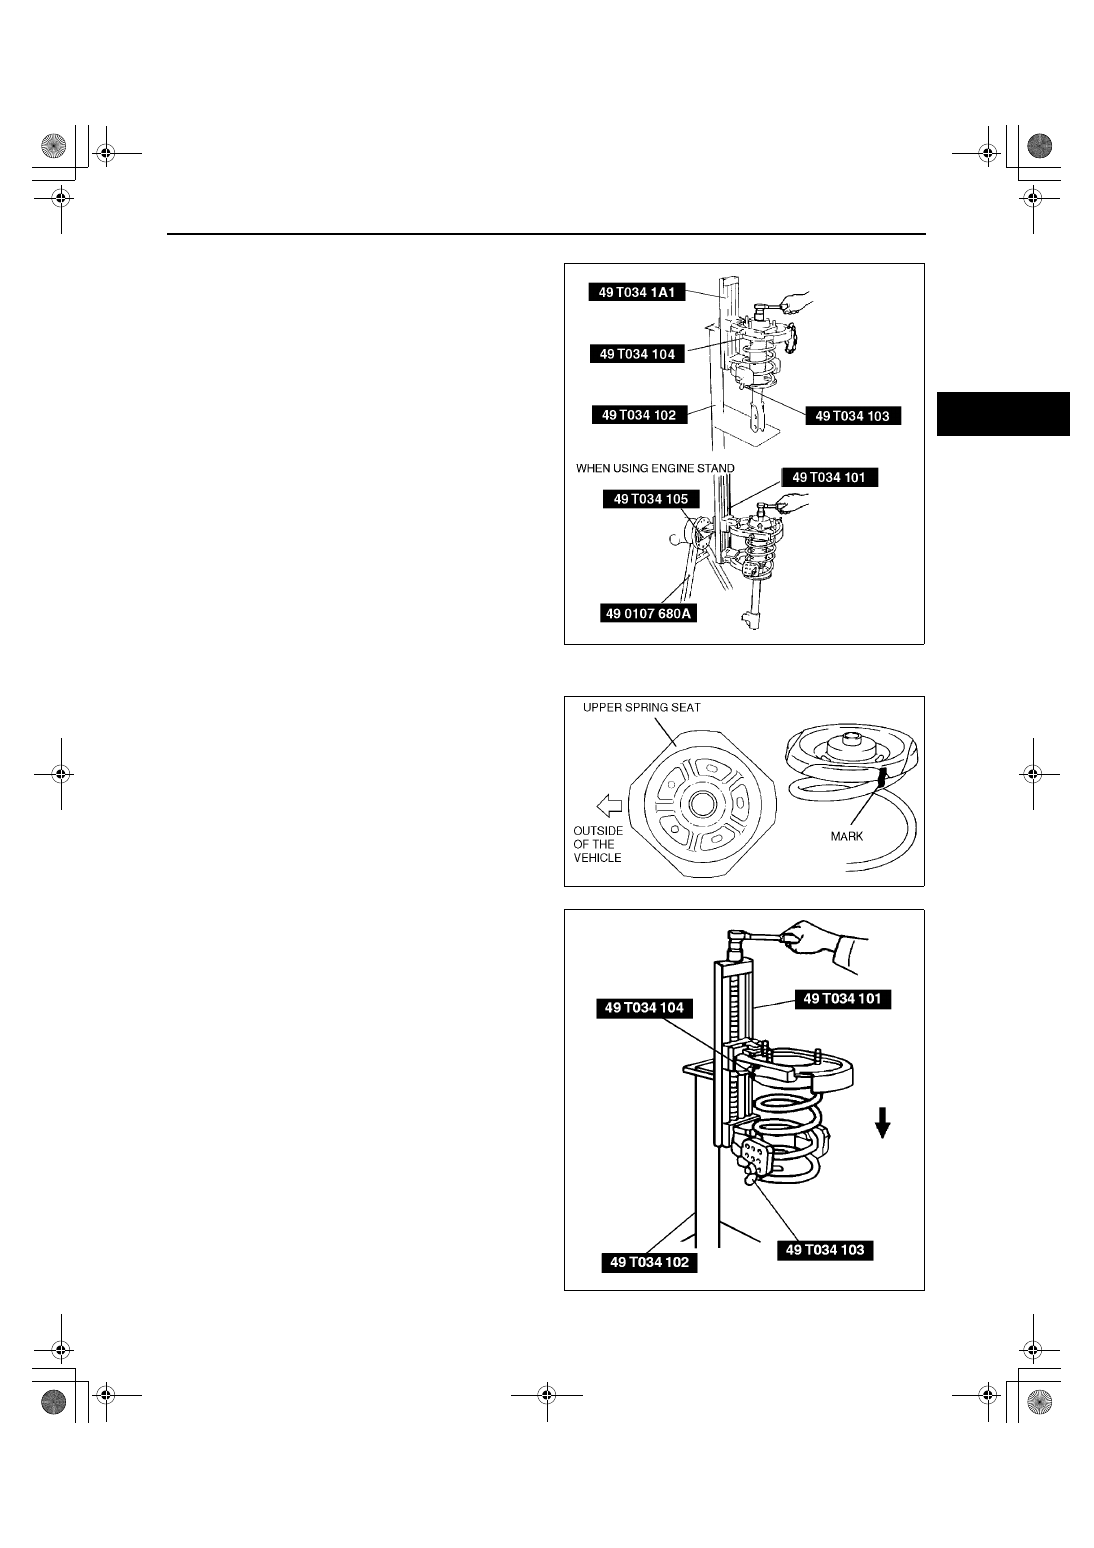 Mazda 3 Service Manual: Front Lower Arm RemovalInstallation